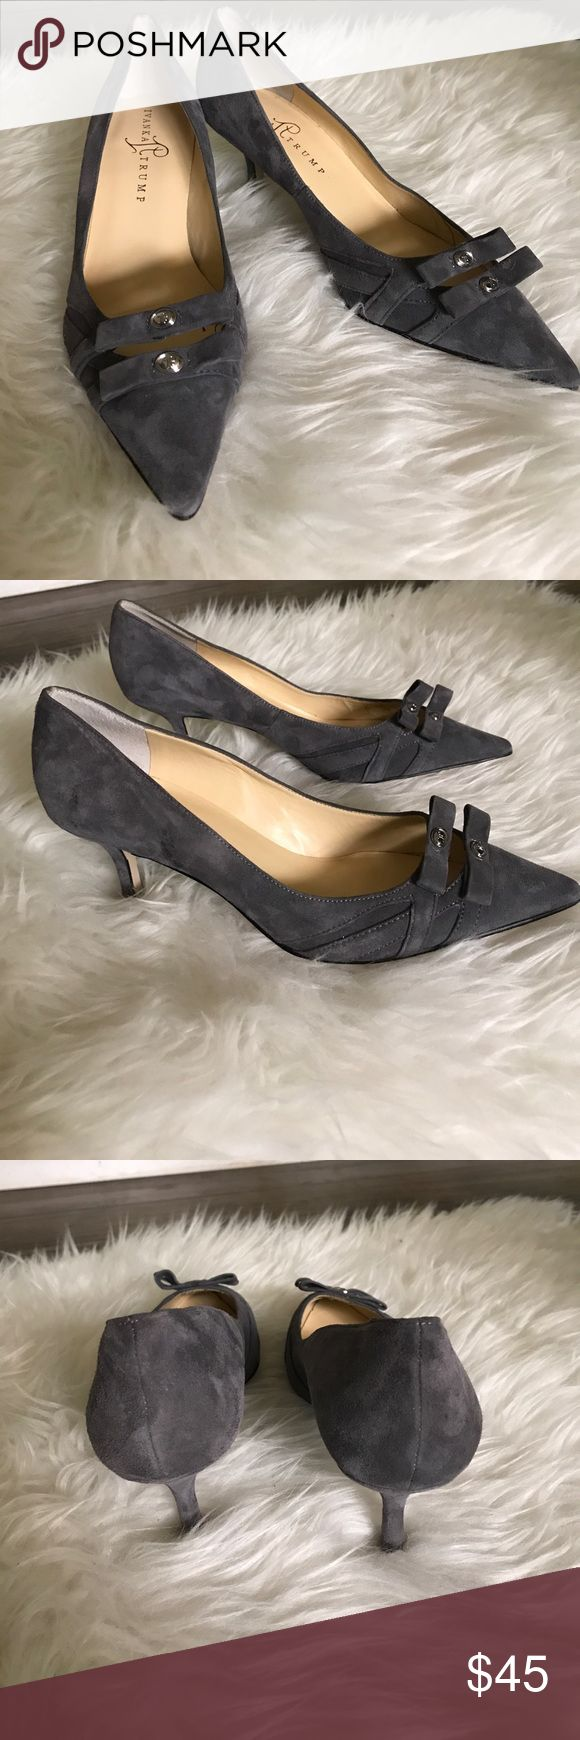 Ivanka Trump heels Pretty heels by Ivanka Trump. Suede gray leather. Pointed toes with two subtle bows at top. Classic and chic. Great condition. Heel height 3. Ivanka Trump Shoes Heels